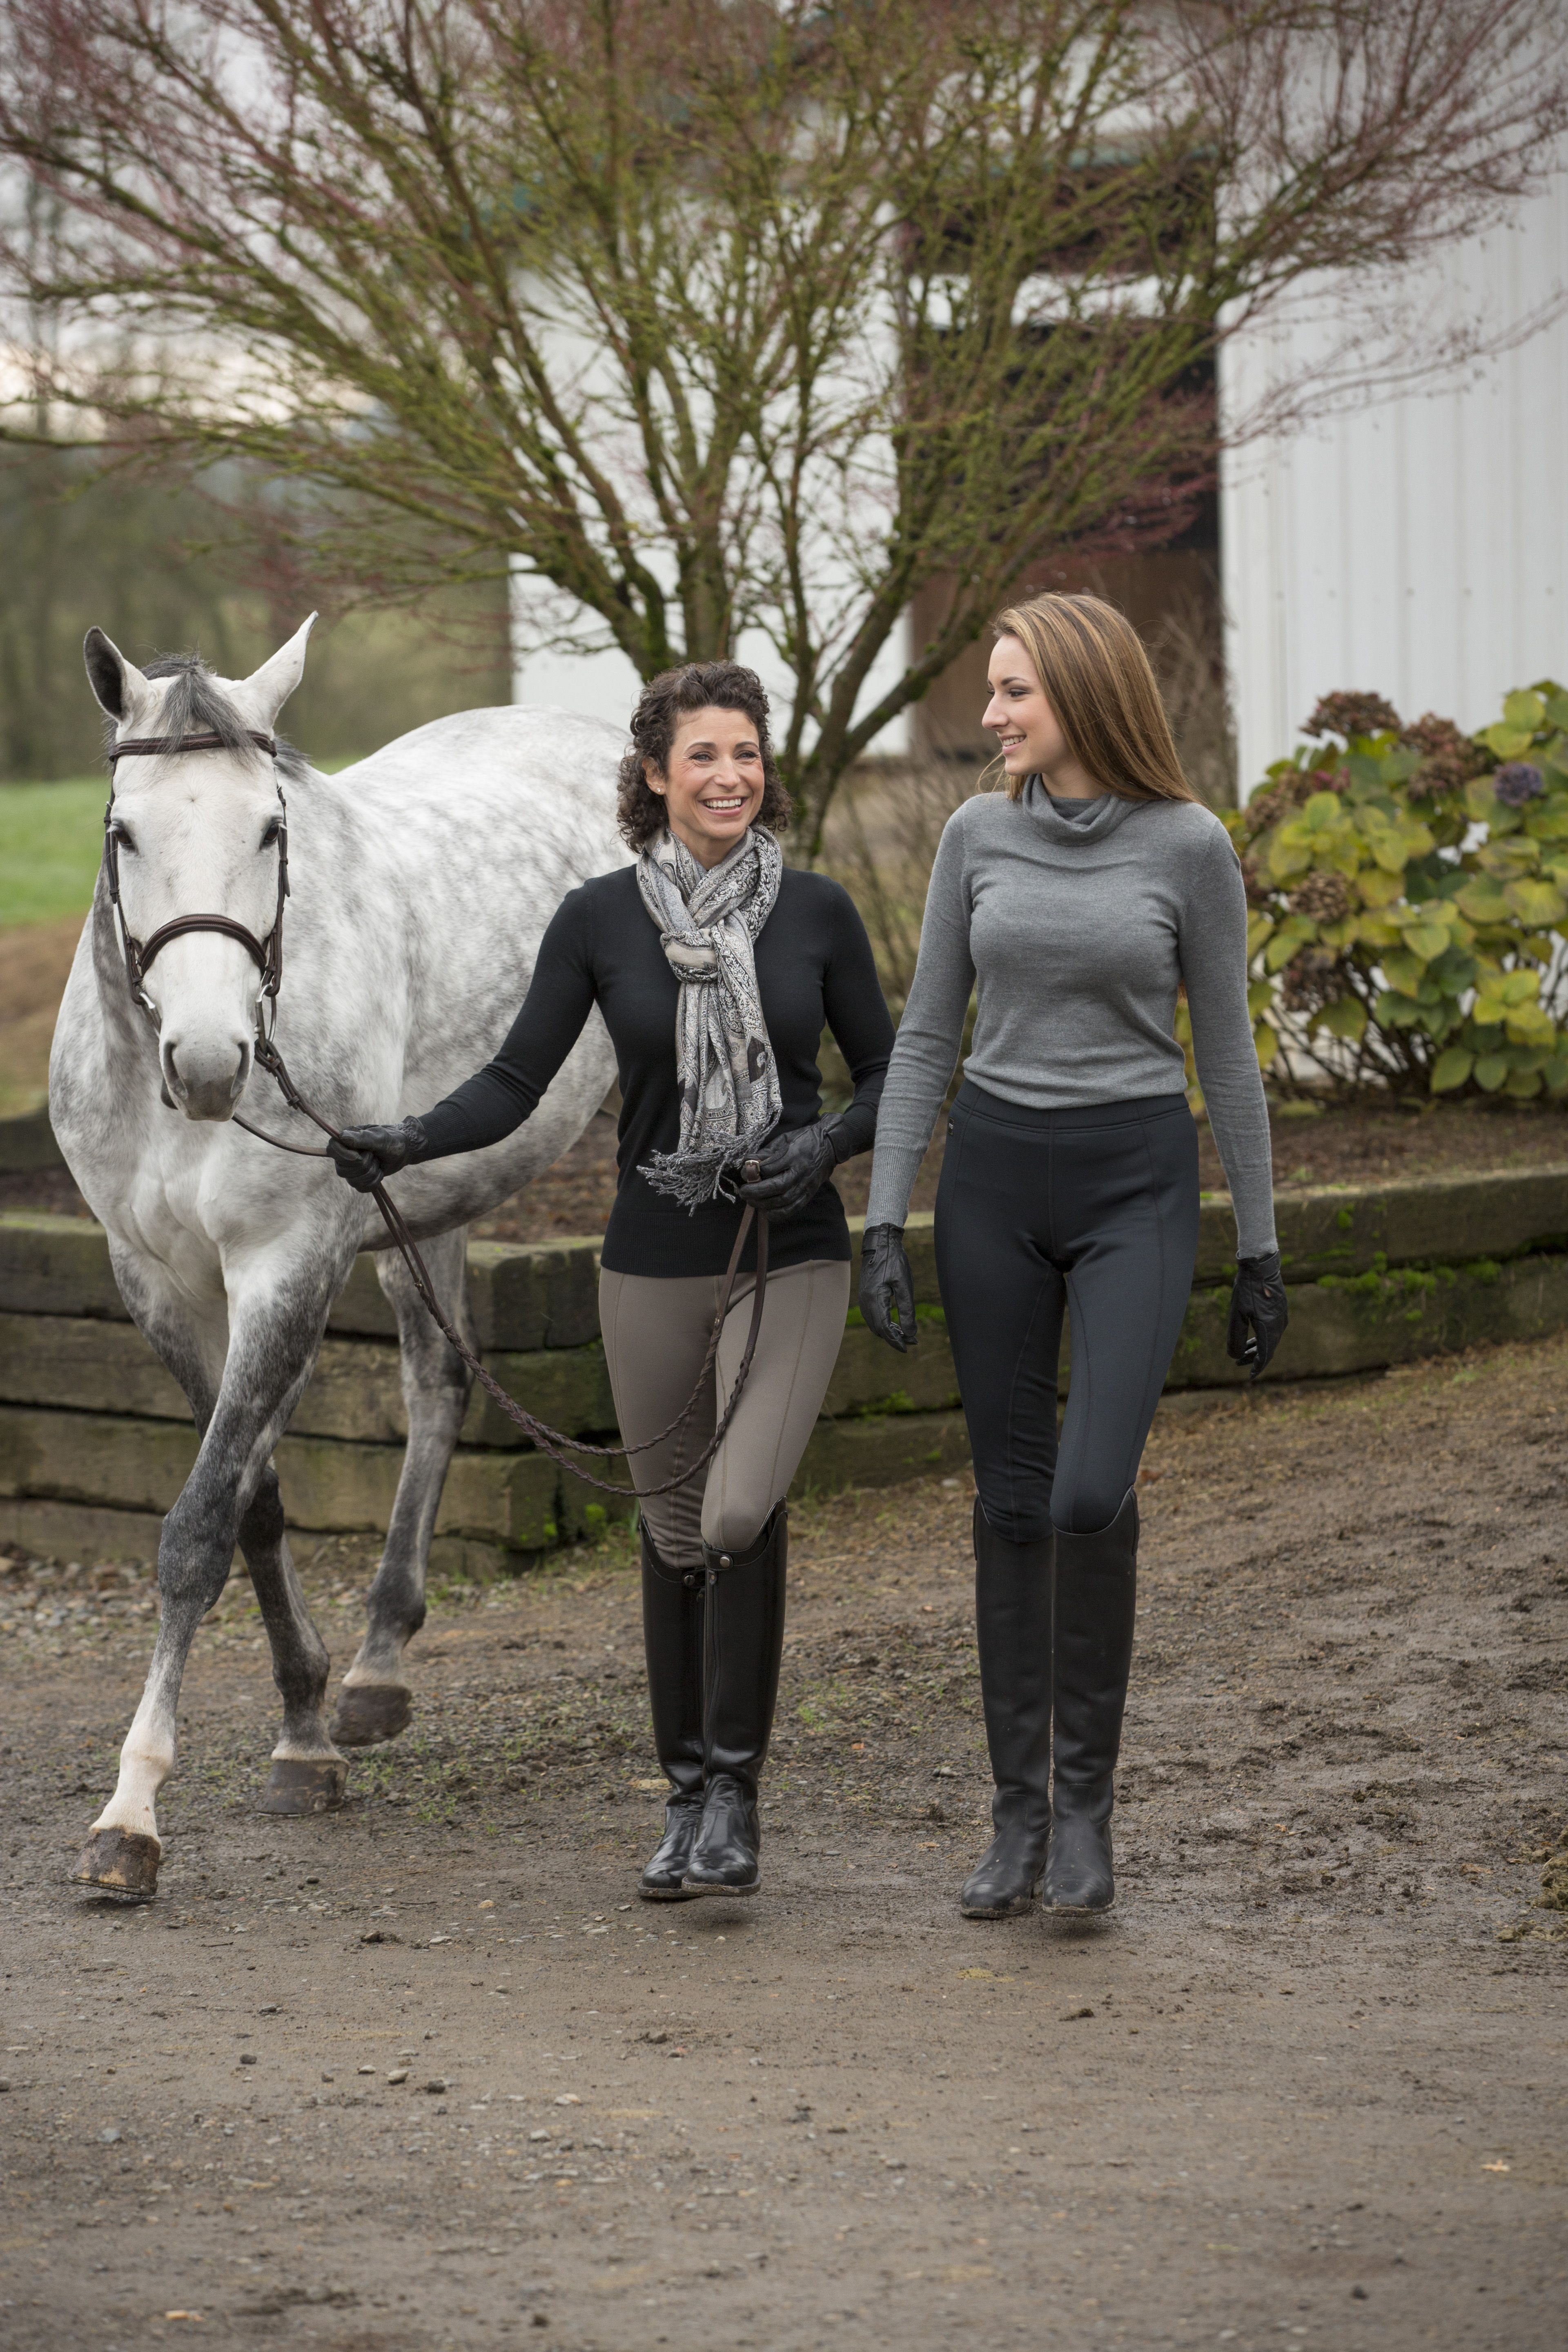 Wind Pro Treads Breeches That Insulate And Grip To Keep